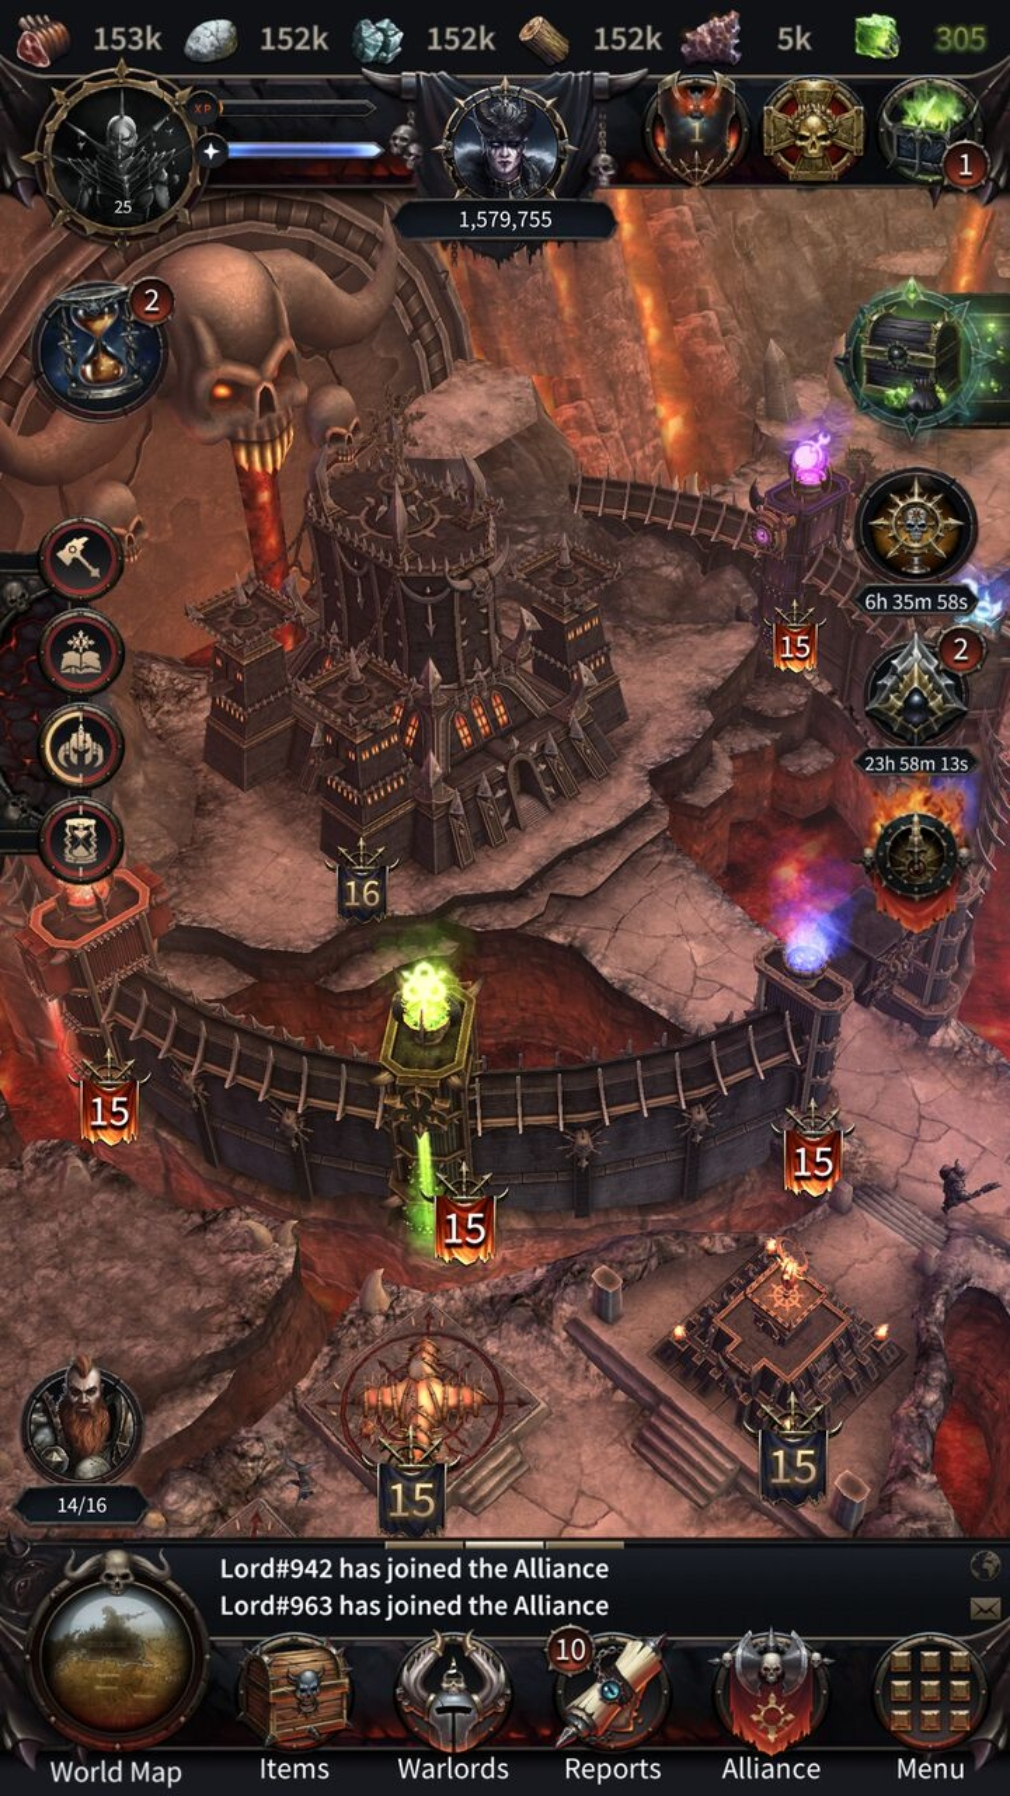 Warhammer Chaos and Conquest iOS screenshot - Fighting over a castle